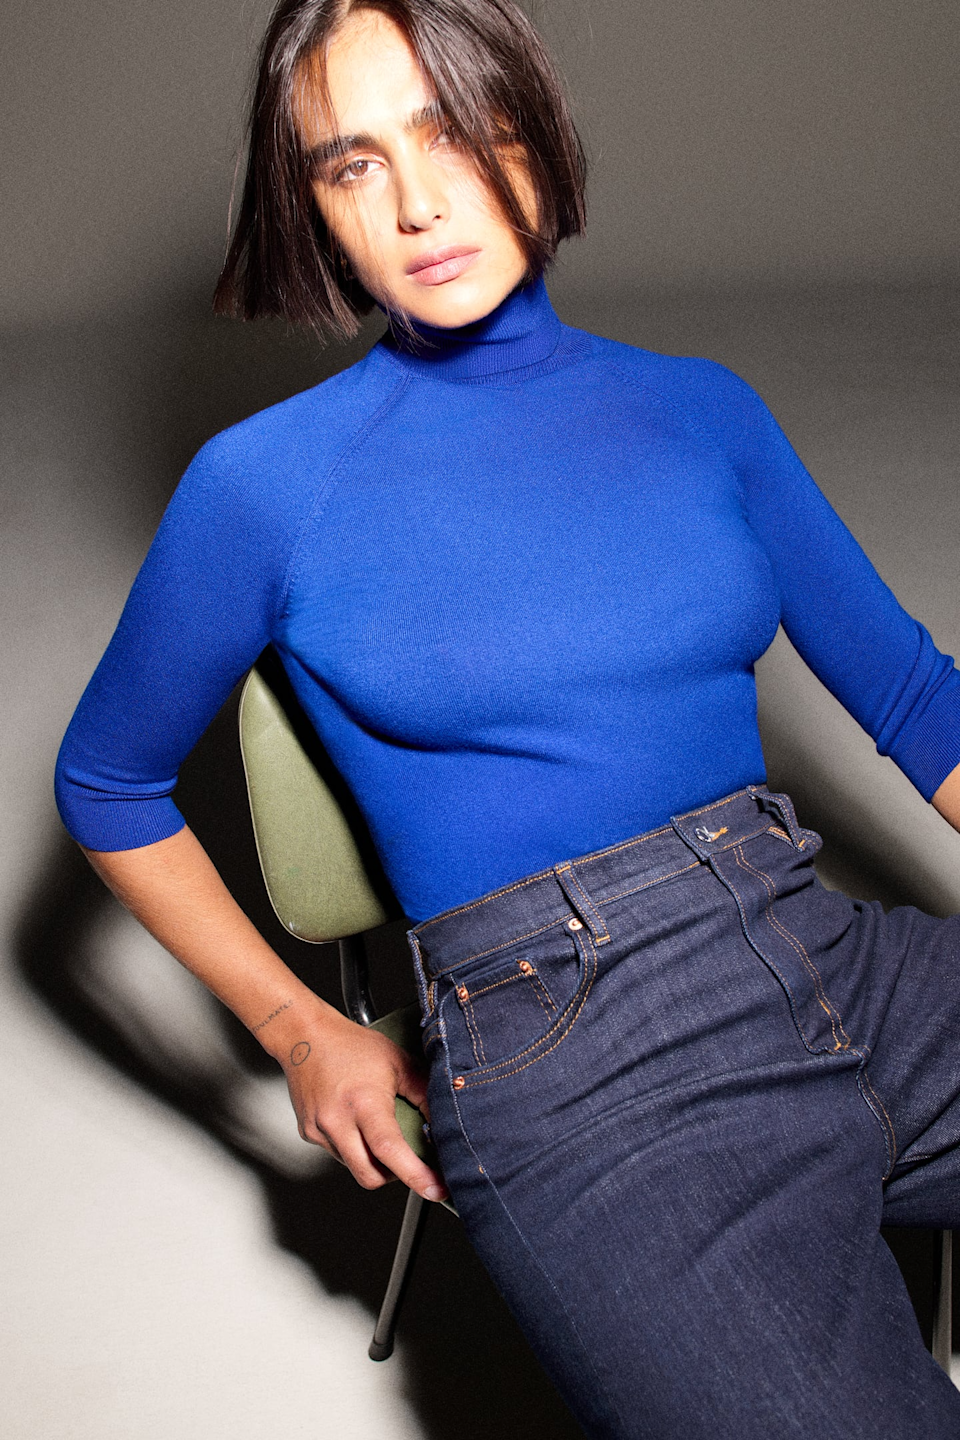 """<h2>Zara High Collar Knit Sweater</h2><br>""""It's not officially fall for me until I bust out the turtlenecks. It is so easy to make your winter wardrobe look effortless and chic when you buy a hundred turtlenecks in different colors and variations. You can always find me making a beeline to Zara for the brand's inexpensive yet durable cold-weather basics."""" <em>– Alexandra Polk, Lifestyle Writer</em><br><br><em>Shop <a href=""""http://zara.com"""" rel=""""nofollow noopener"""" target=""""_blank"""" data-ylk=""""slk:Zara"""" class=""""link rapid-noclick-resp"""">Zara</a></em><br><br><strong>Zara</strong> HIGH COLLAR KNIT SWEATER, $, available at <a href=""""https://go.skimresources.com/?id=30283X879131&url=https%3A%2F%2Fwww.zara.com%2Fus%2Fen%2Fhigh-collar-knit-sweater-p05646124.html"""" rel=""""nofollow noopener"""" target=""""_blank"""" data-ylk=""""slk:Zara"""" class=""""link rapid-noclick-resp"""">Zara</a>"""